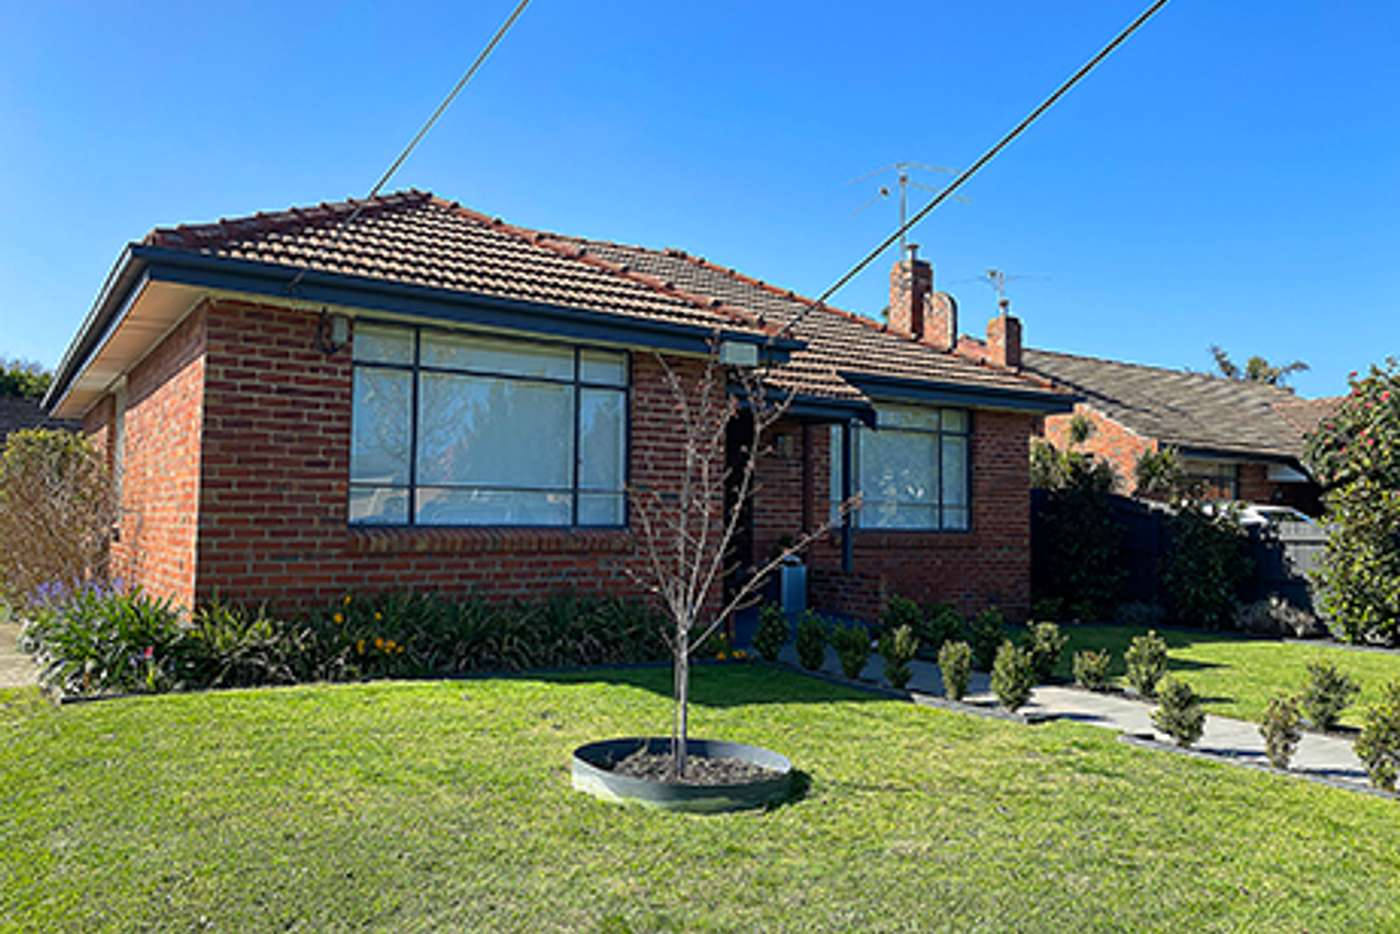 Main view of Homely house listing, 3 Shipston Road, Cheltenham VIC 3192